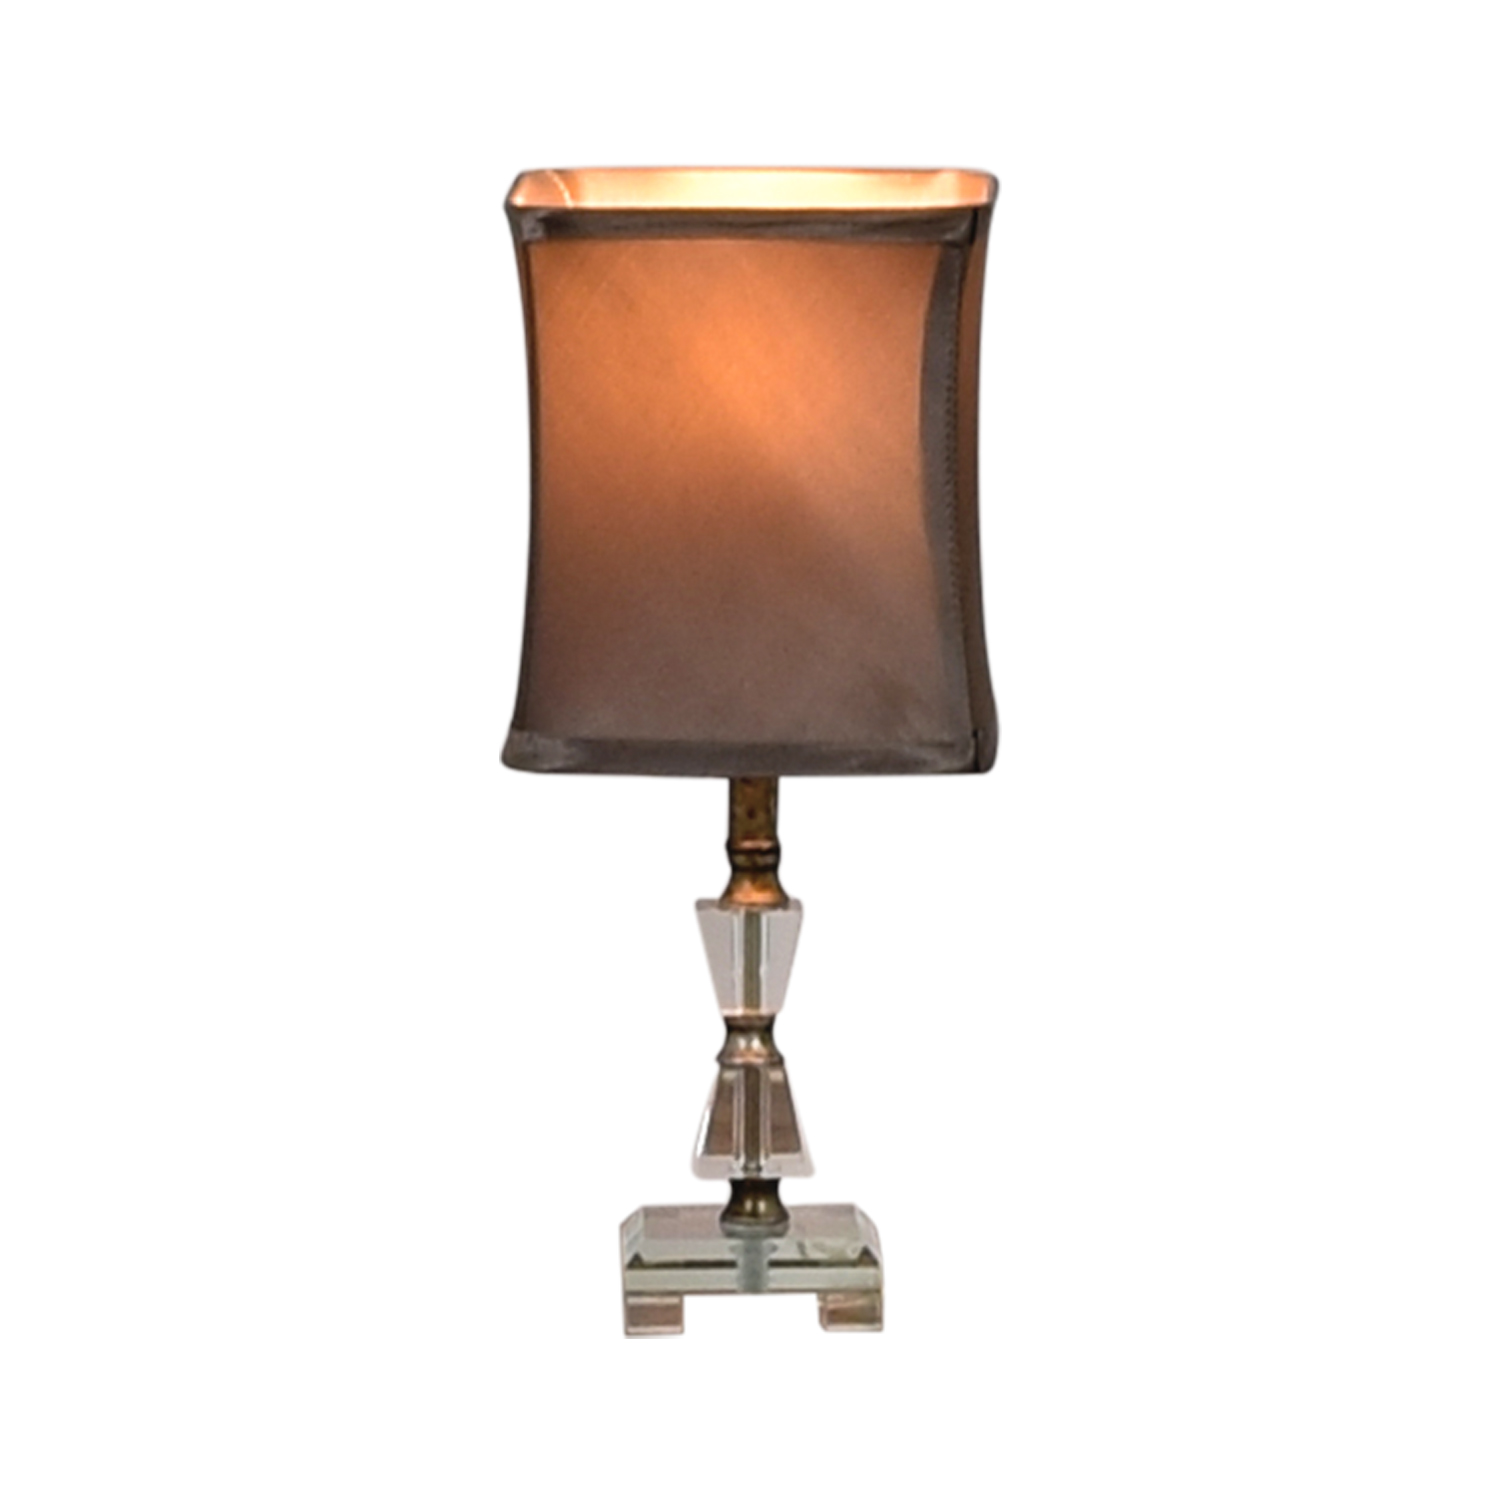 Pier 1 Imports Pier 1 Imports Crystal Table Lamp nj